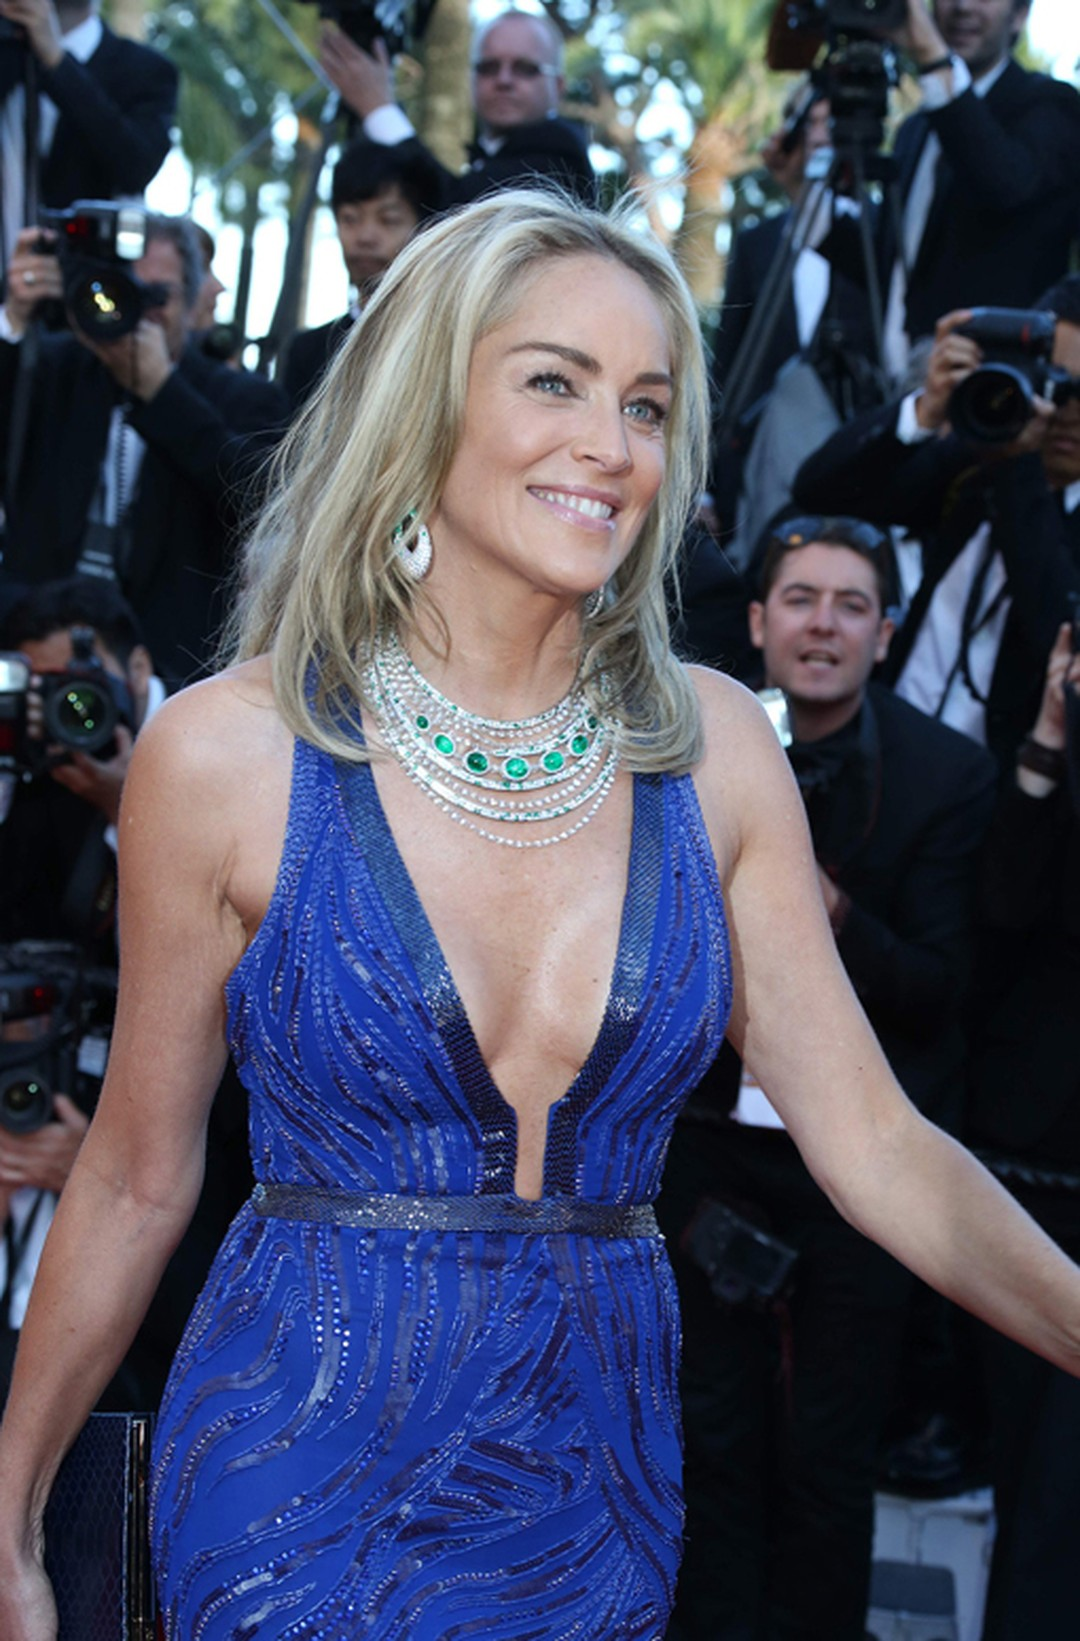 Sharon Stone at the Cannes Film Festival